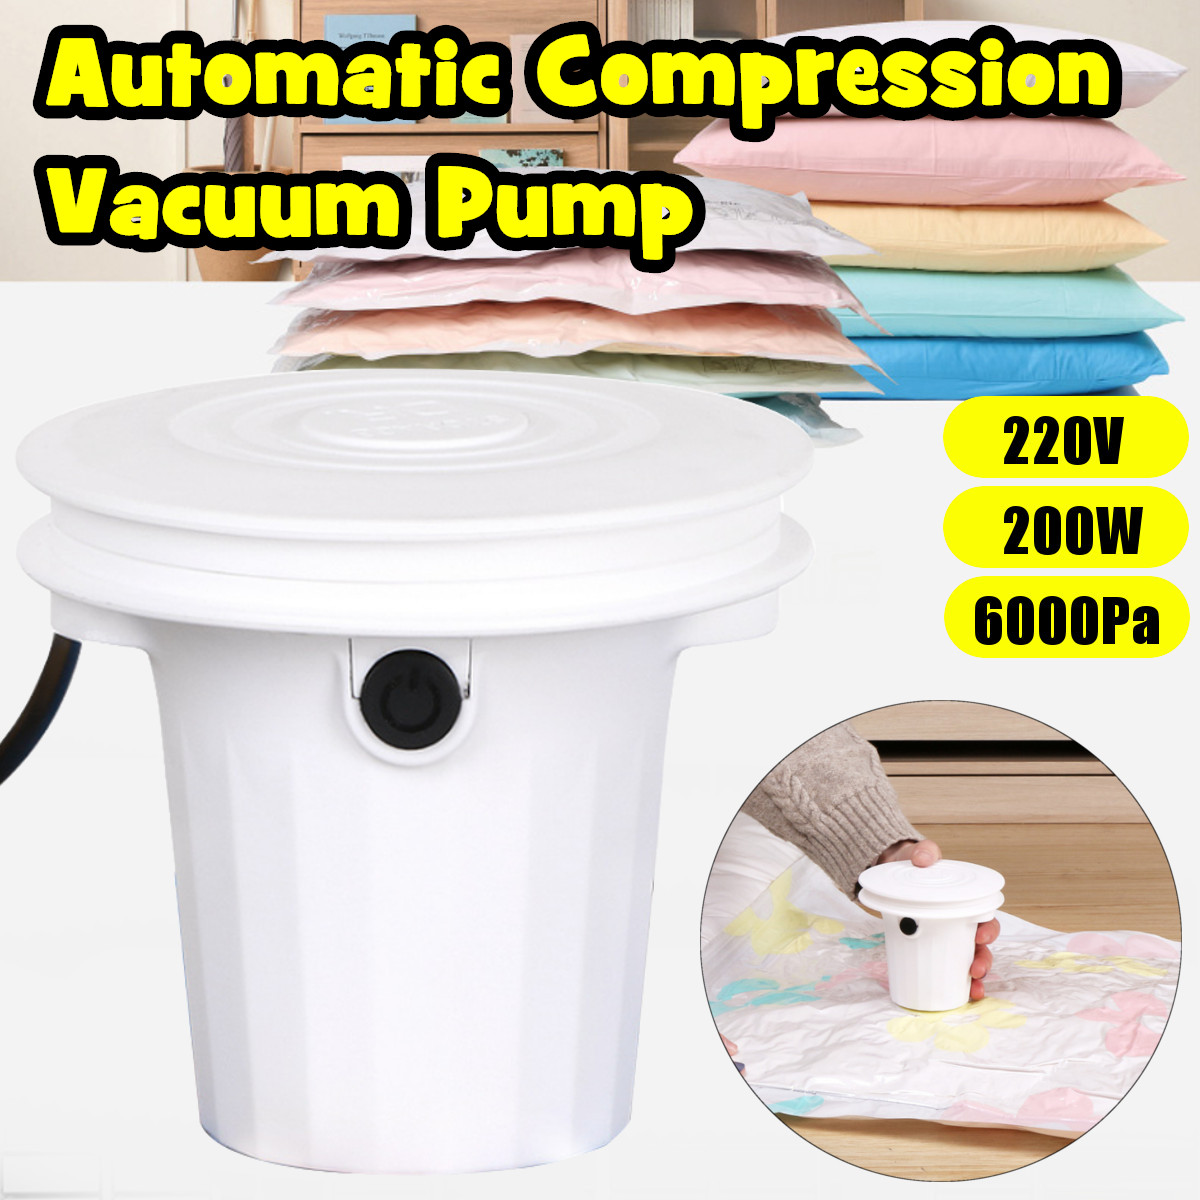 Household  Automatic Vacuum Sealer Pump Machine Compressed Bags Vacuum Compressed Bags Electric Air Pump For Clothes Quilt Food